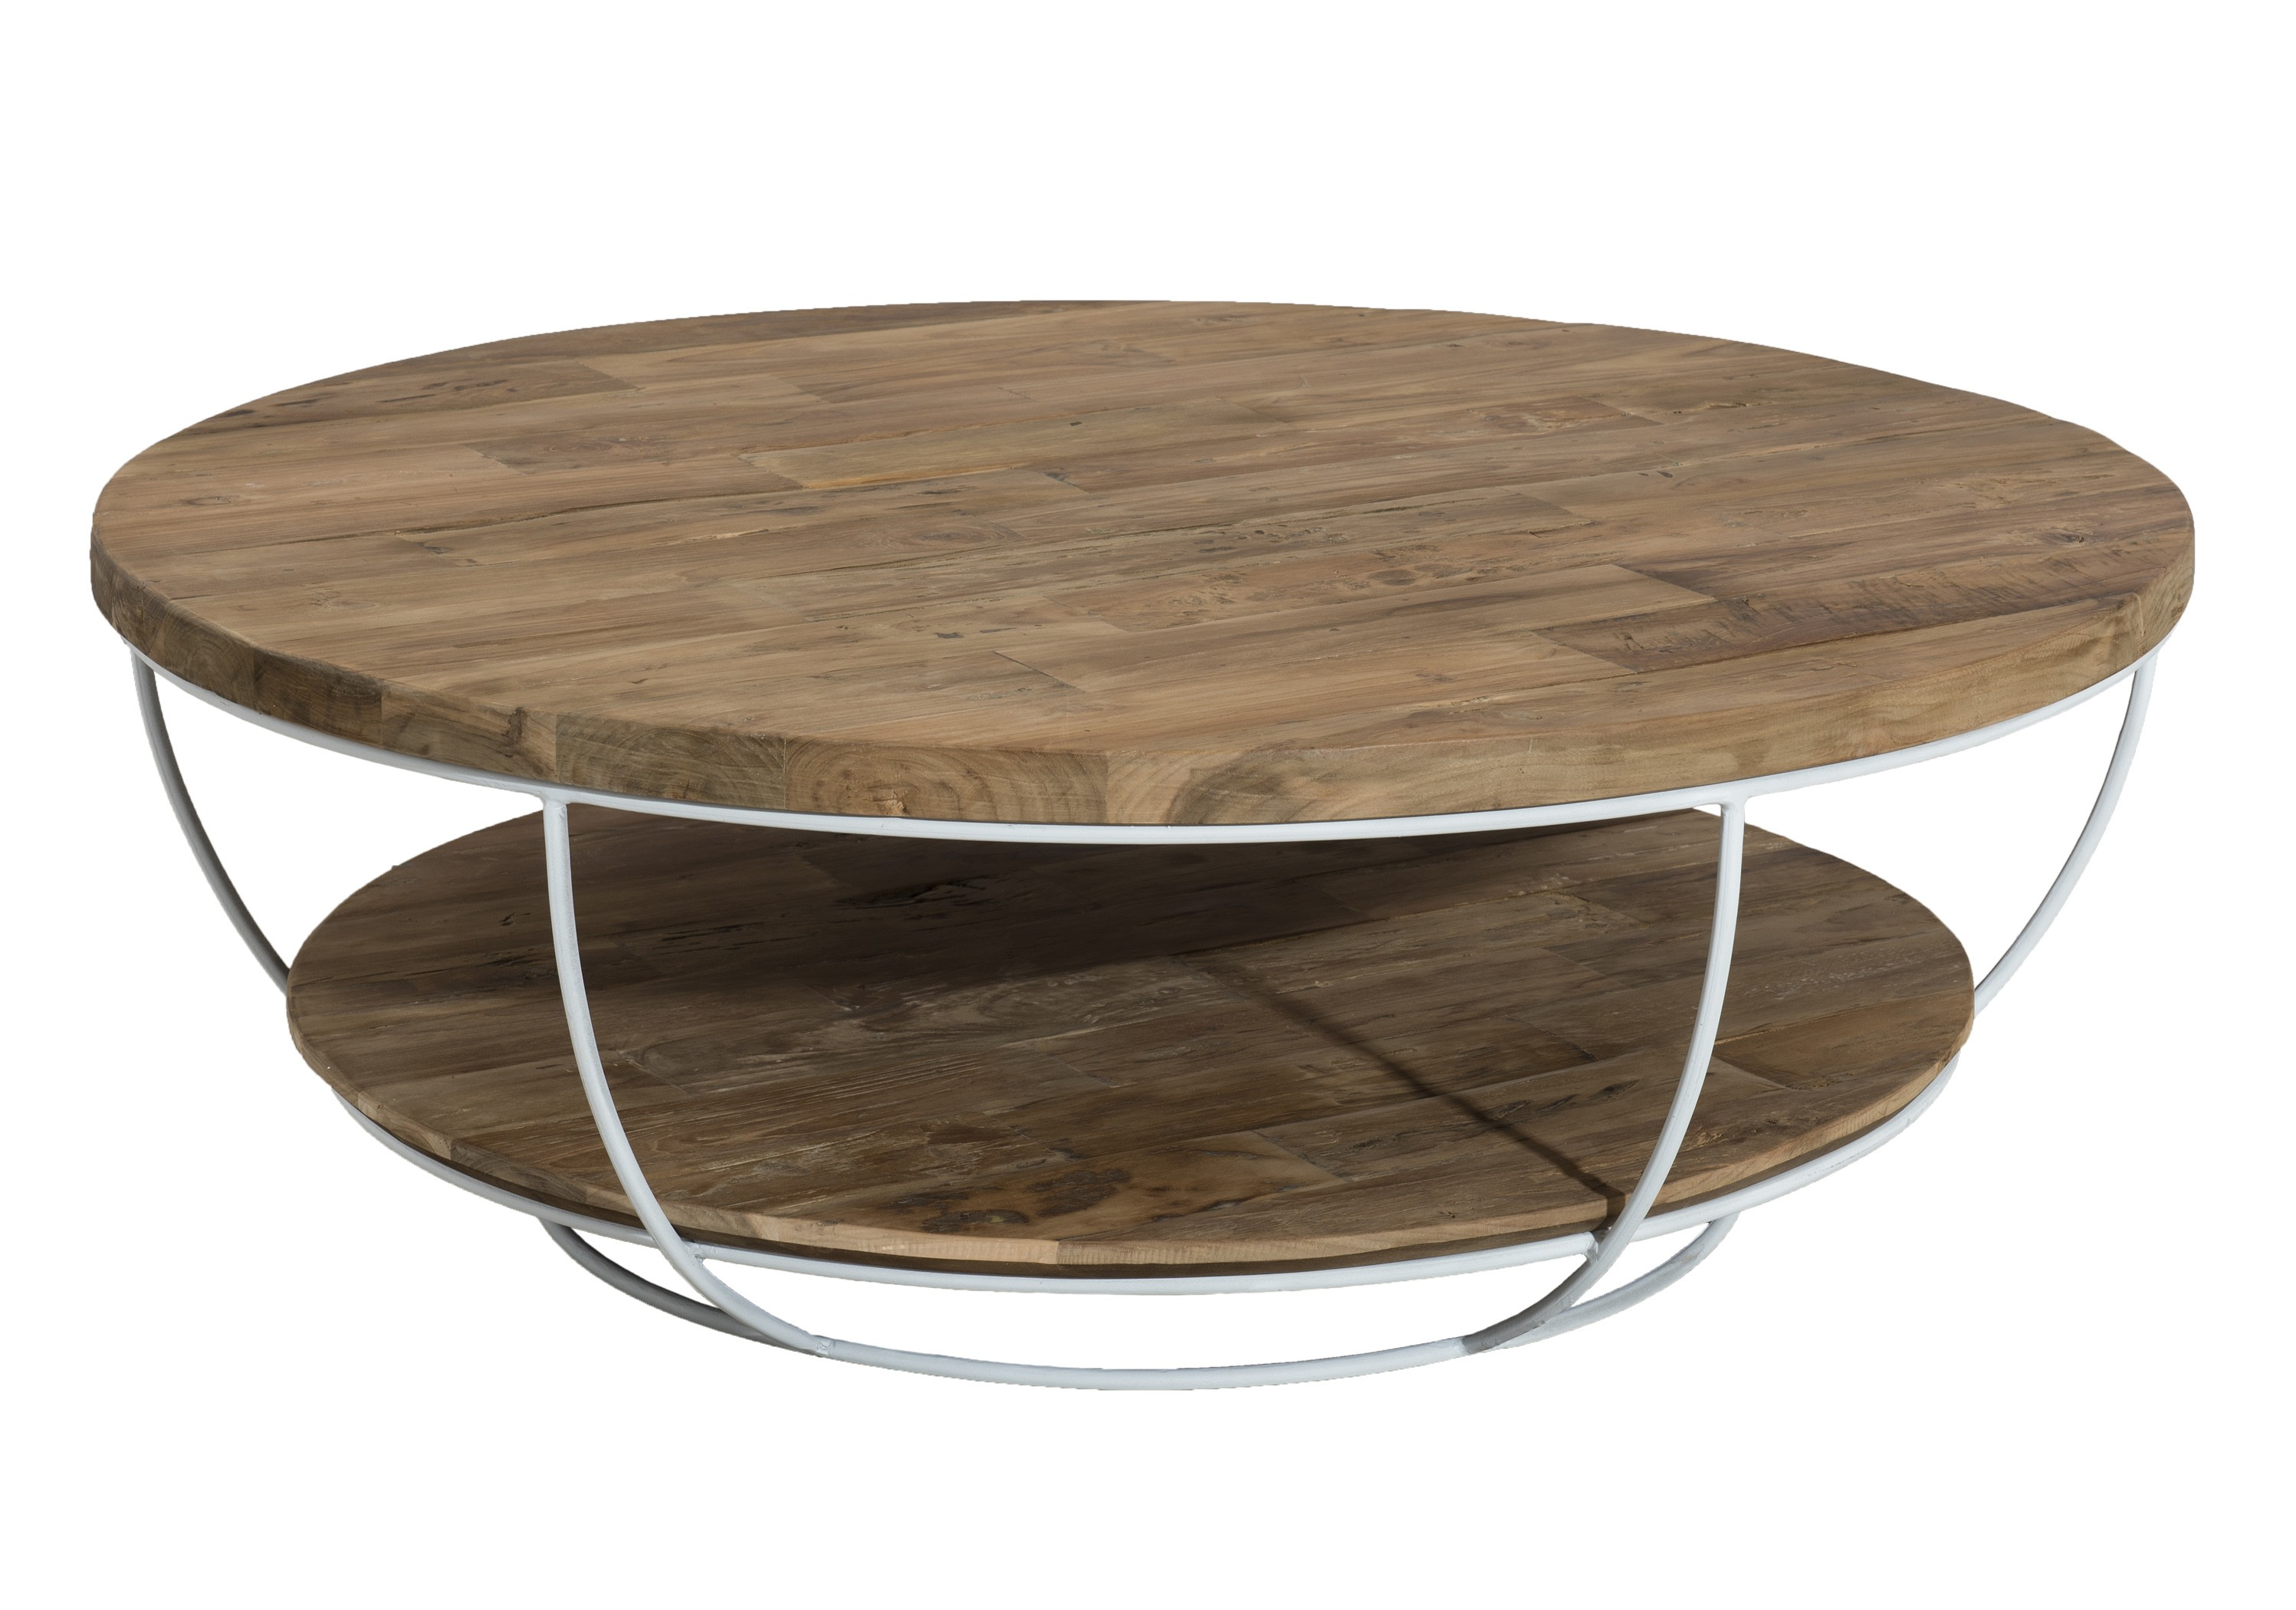 magasin d'usine 6ca26 010a0 Table basse ronde teck recyclé structure filaire blanche 2 plateaux SWING